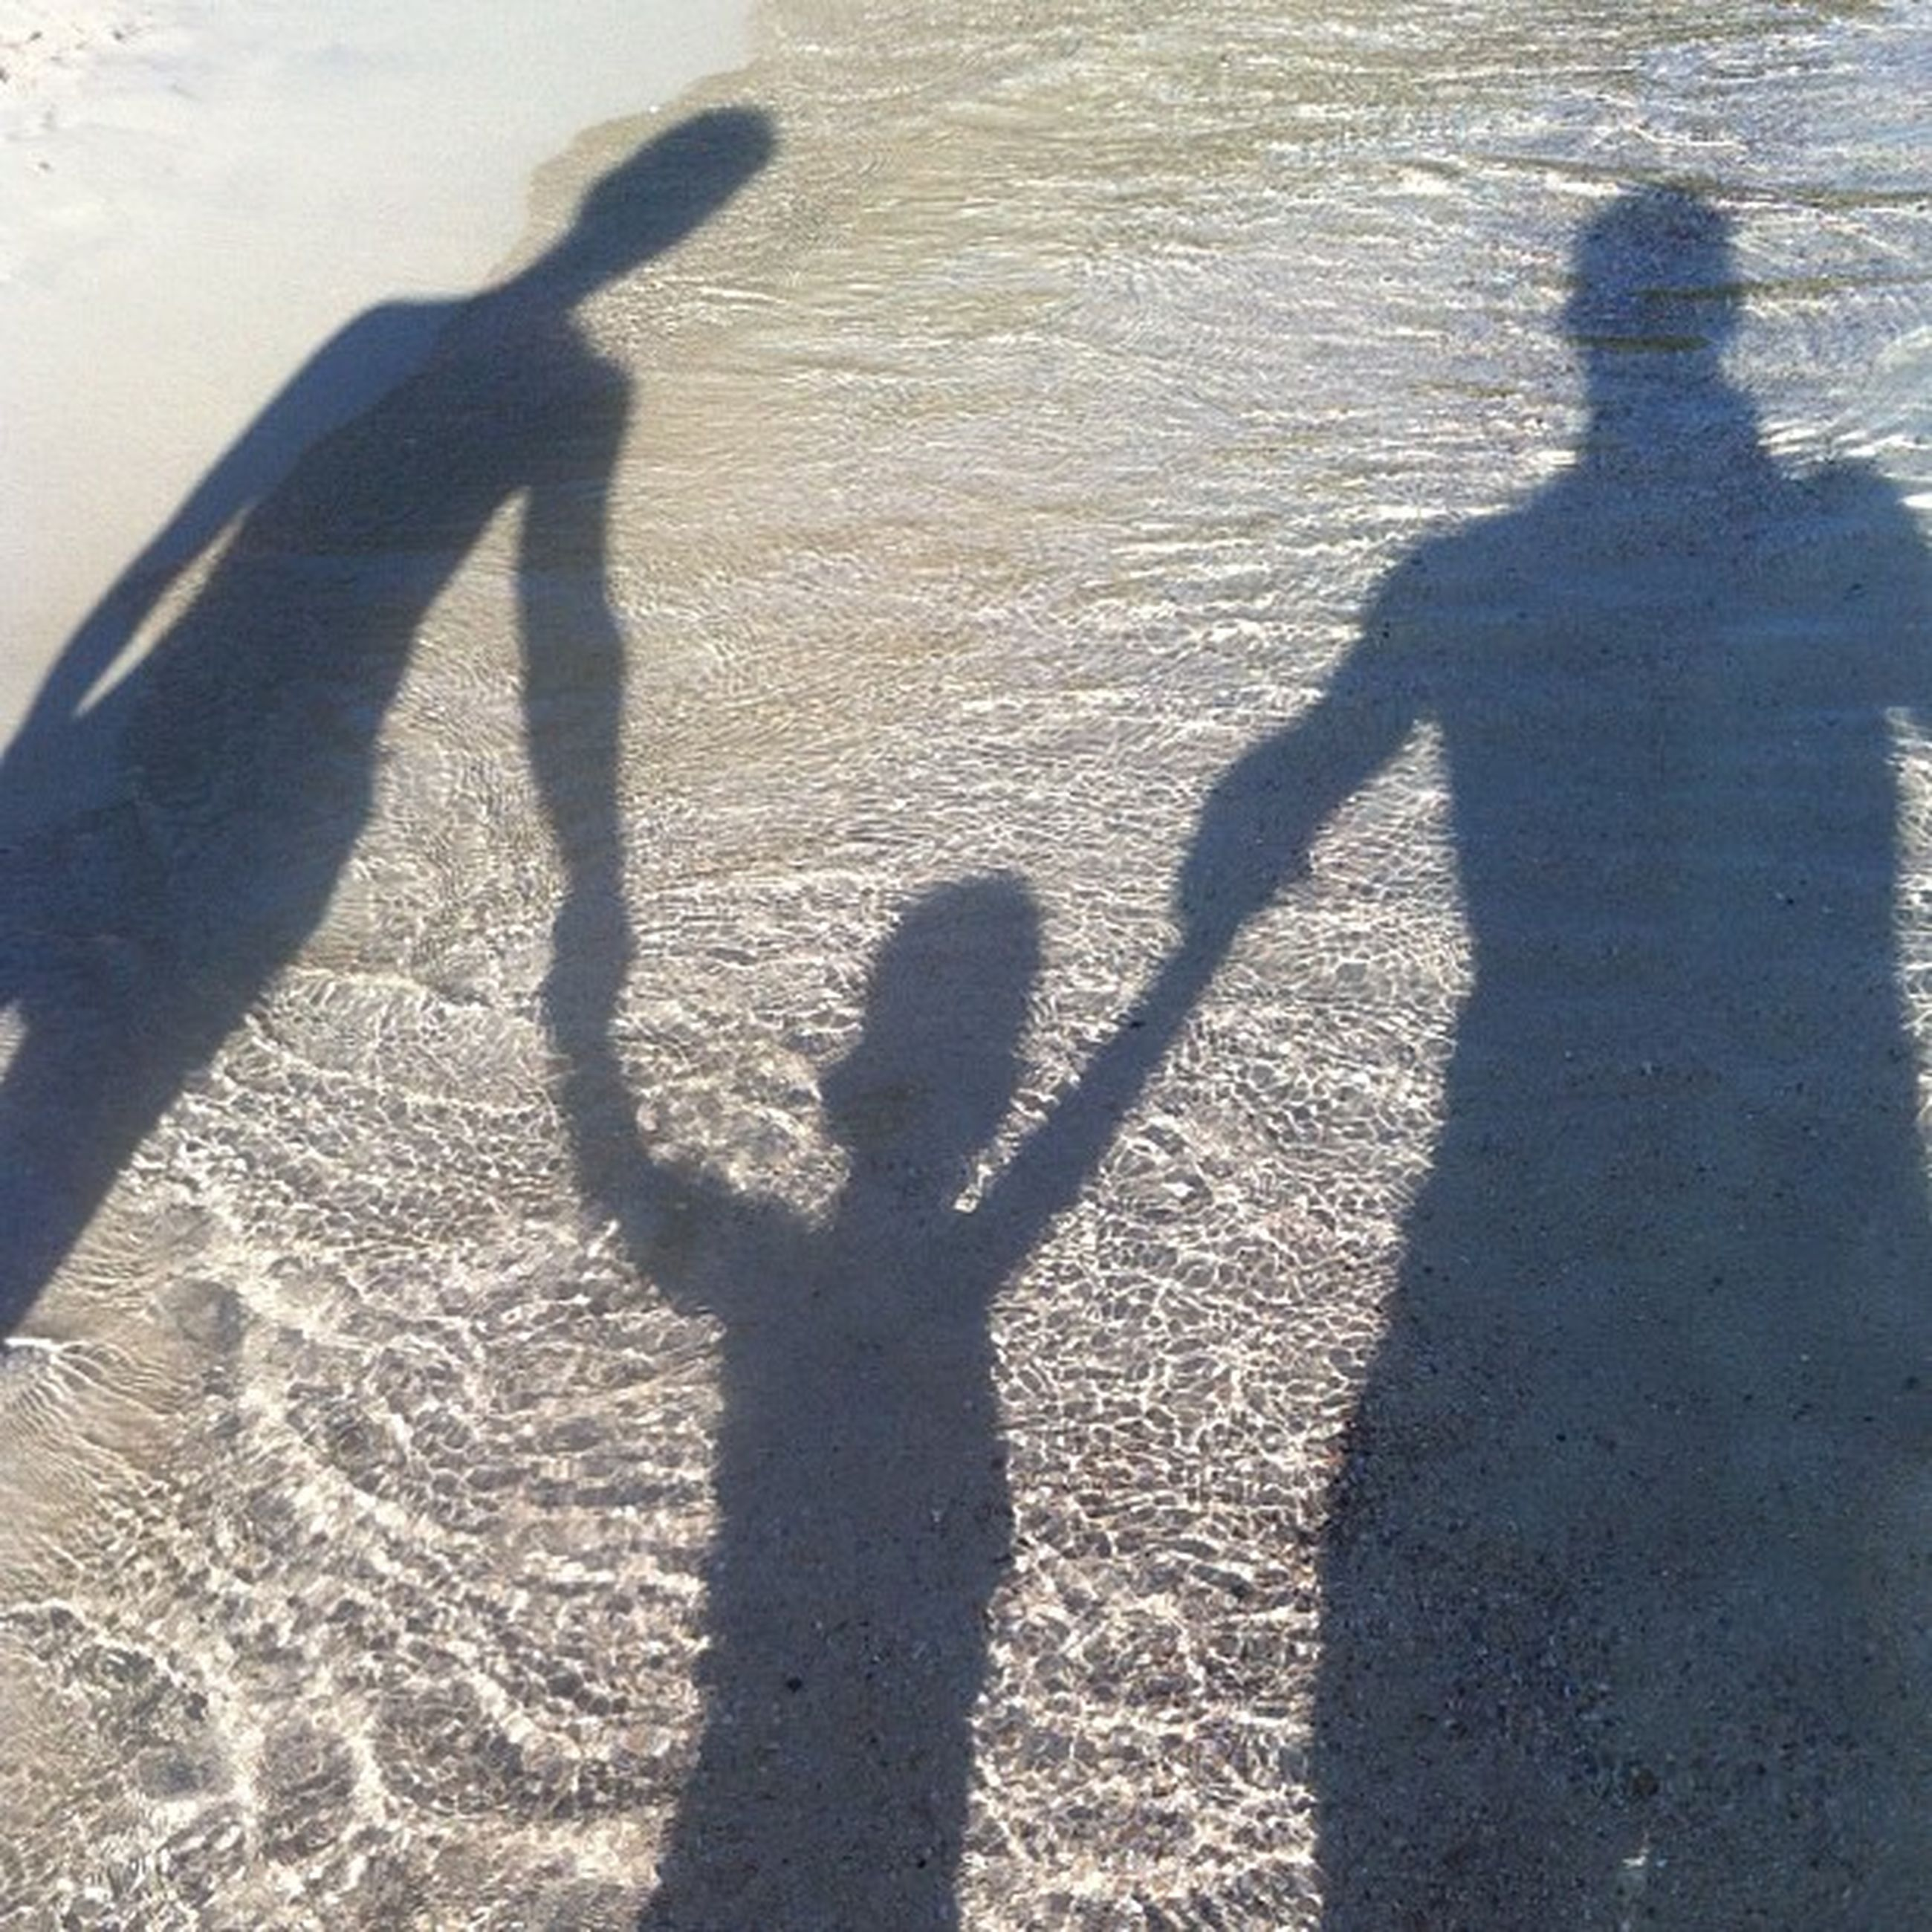 shadow, lifestyles, focus on shadow, sunlight, leisure activity, high angle view, men, standing, togetherness, walking, sand, day, street, unrecognizable person, bonding, outdoors, low section